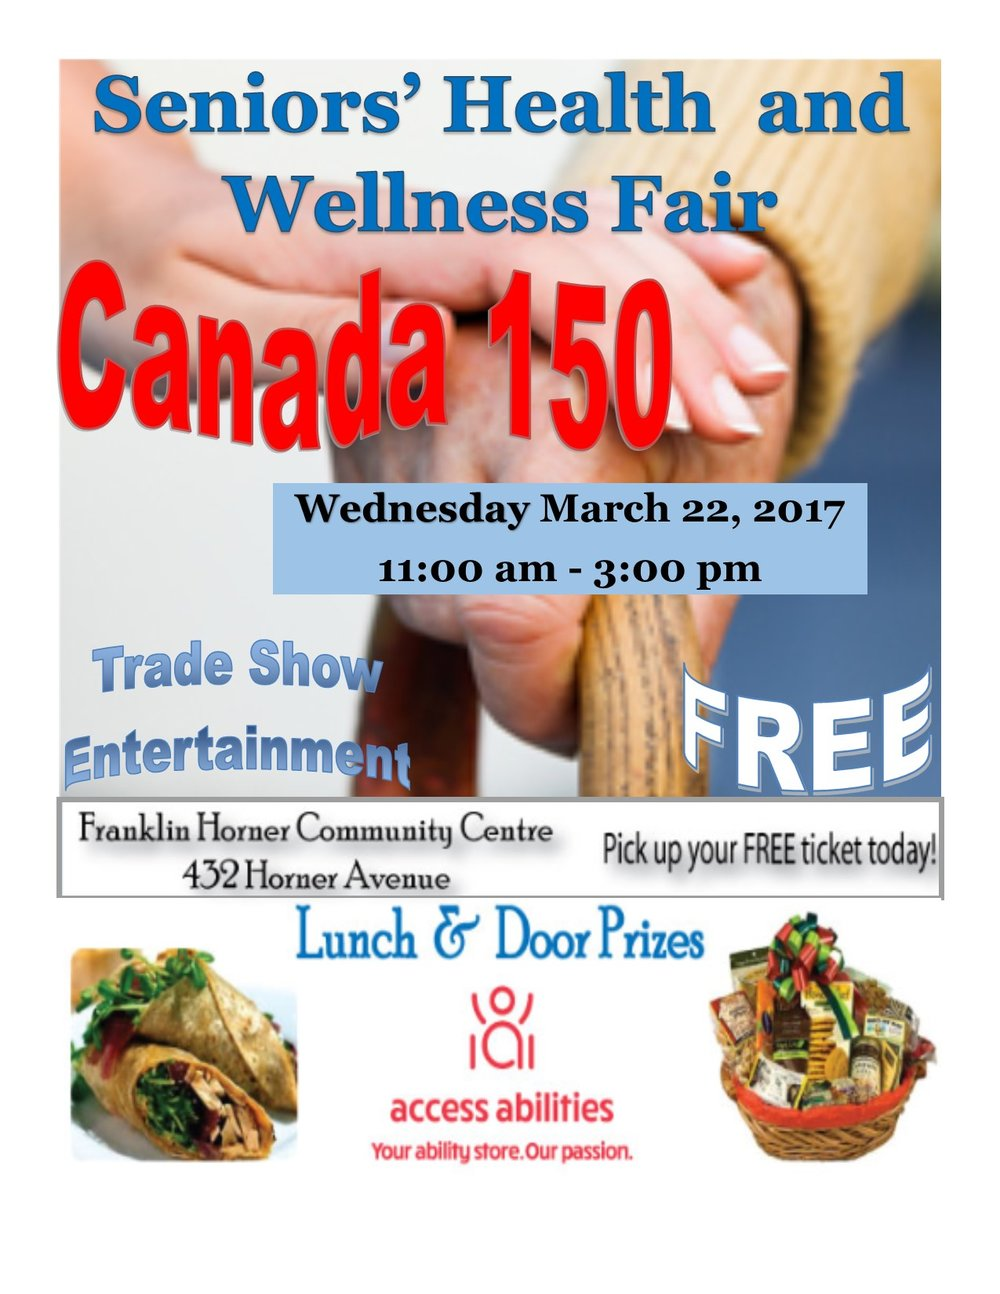 Flyer - Seniors' Health and Wellness Fair 2017.jpg